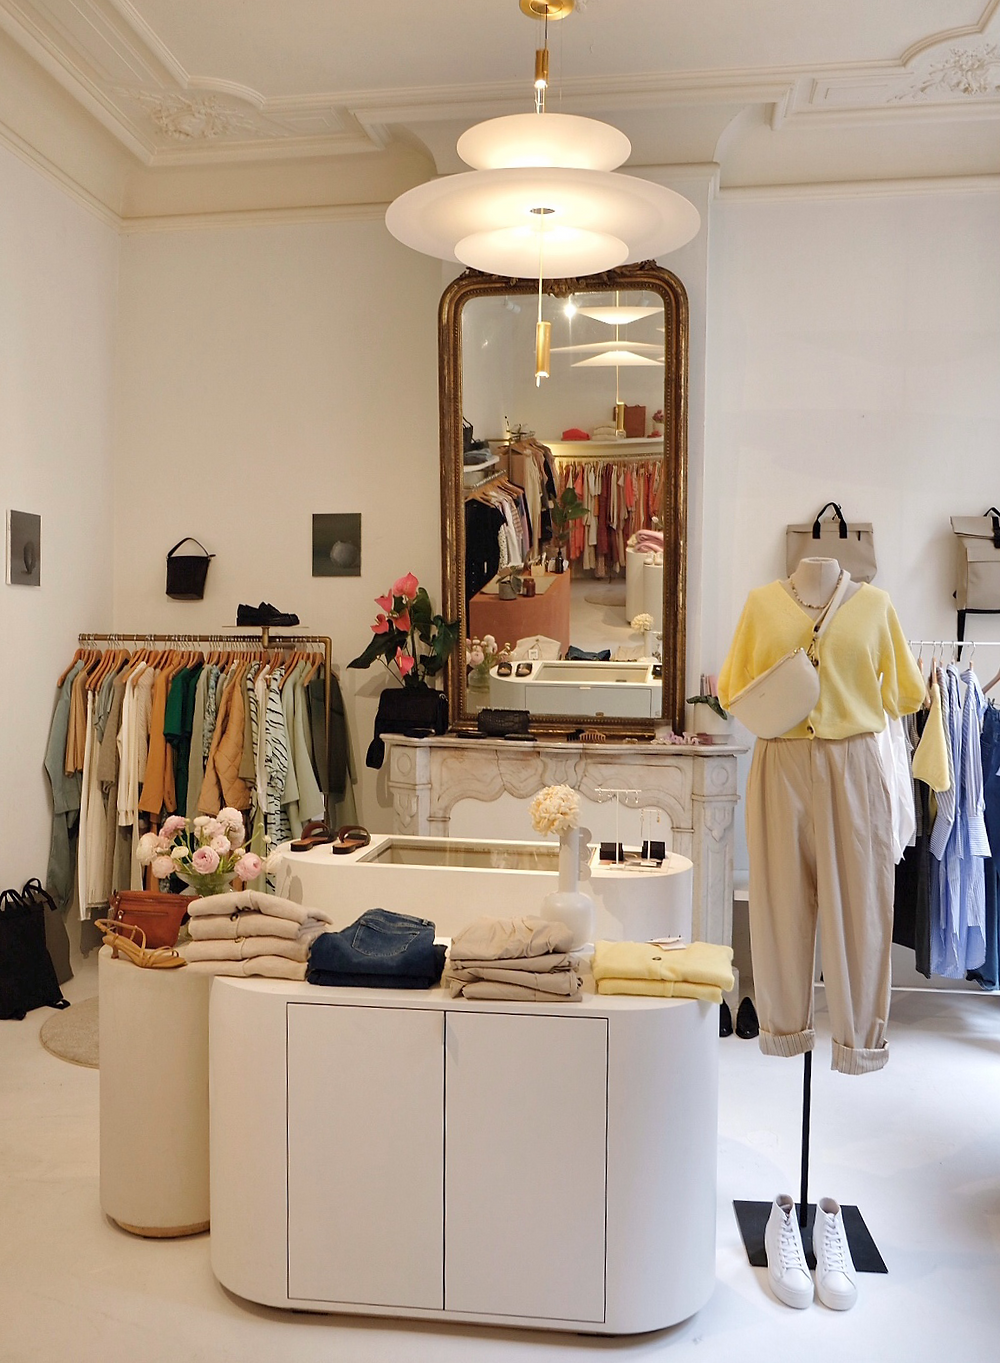 Pêche clothing store in Sint-Niklaas